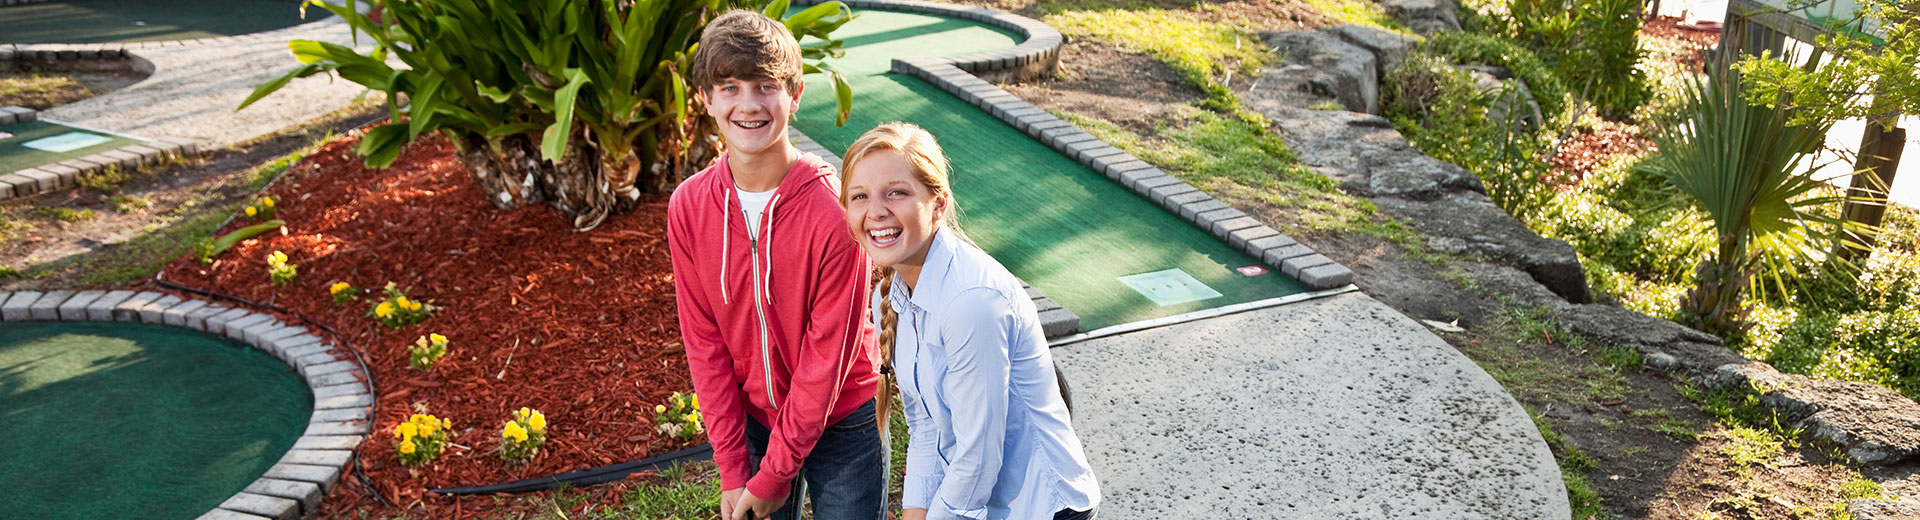 Mini Golf Group Outing | Adventure Landing Family Entertainment Center | Gastonia, NC